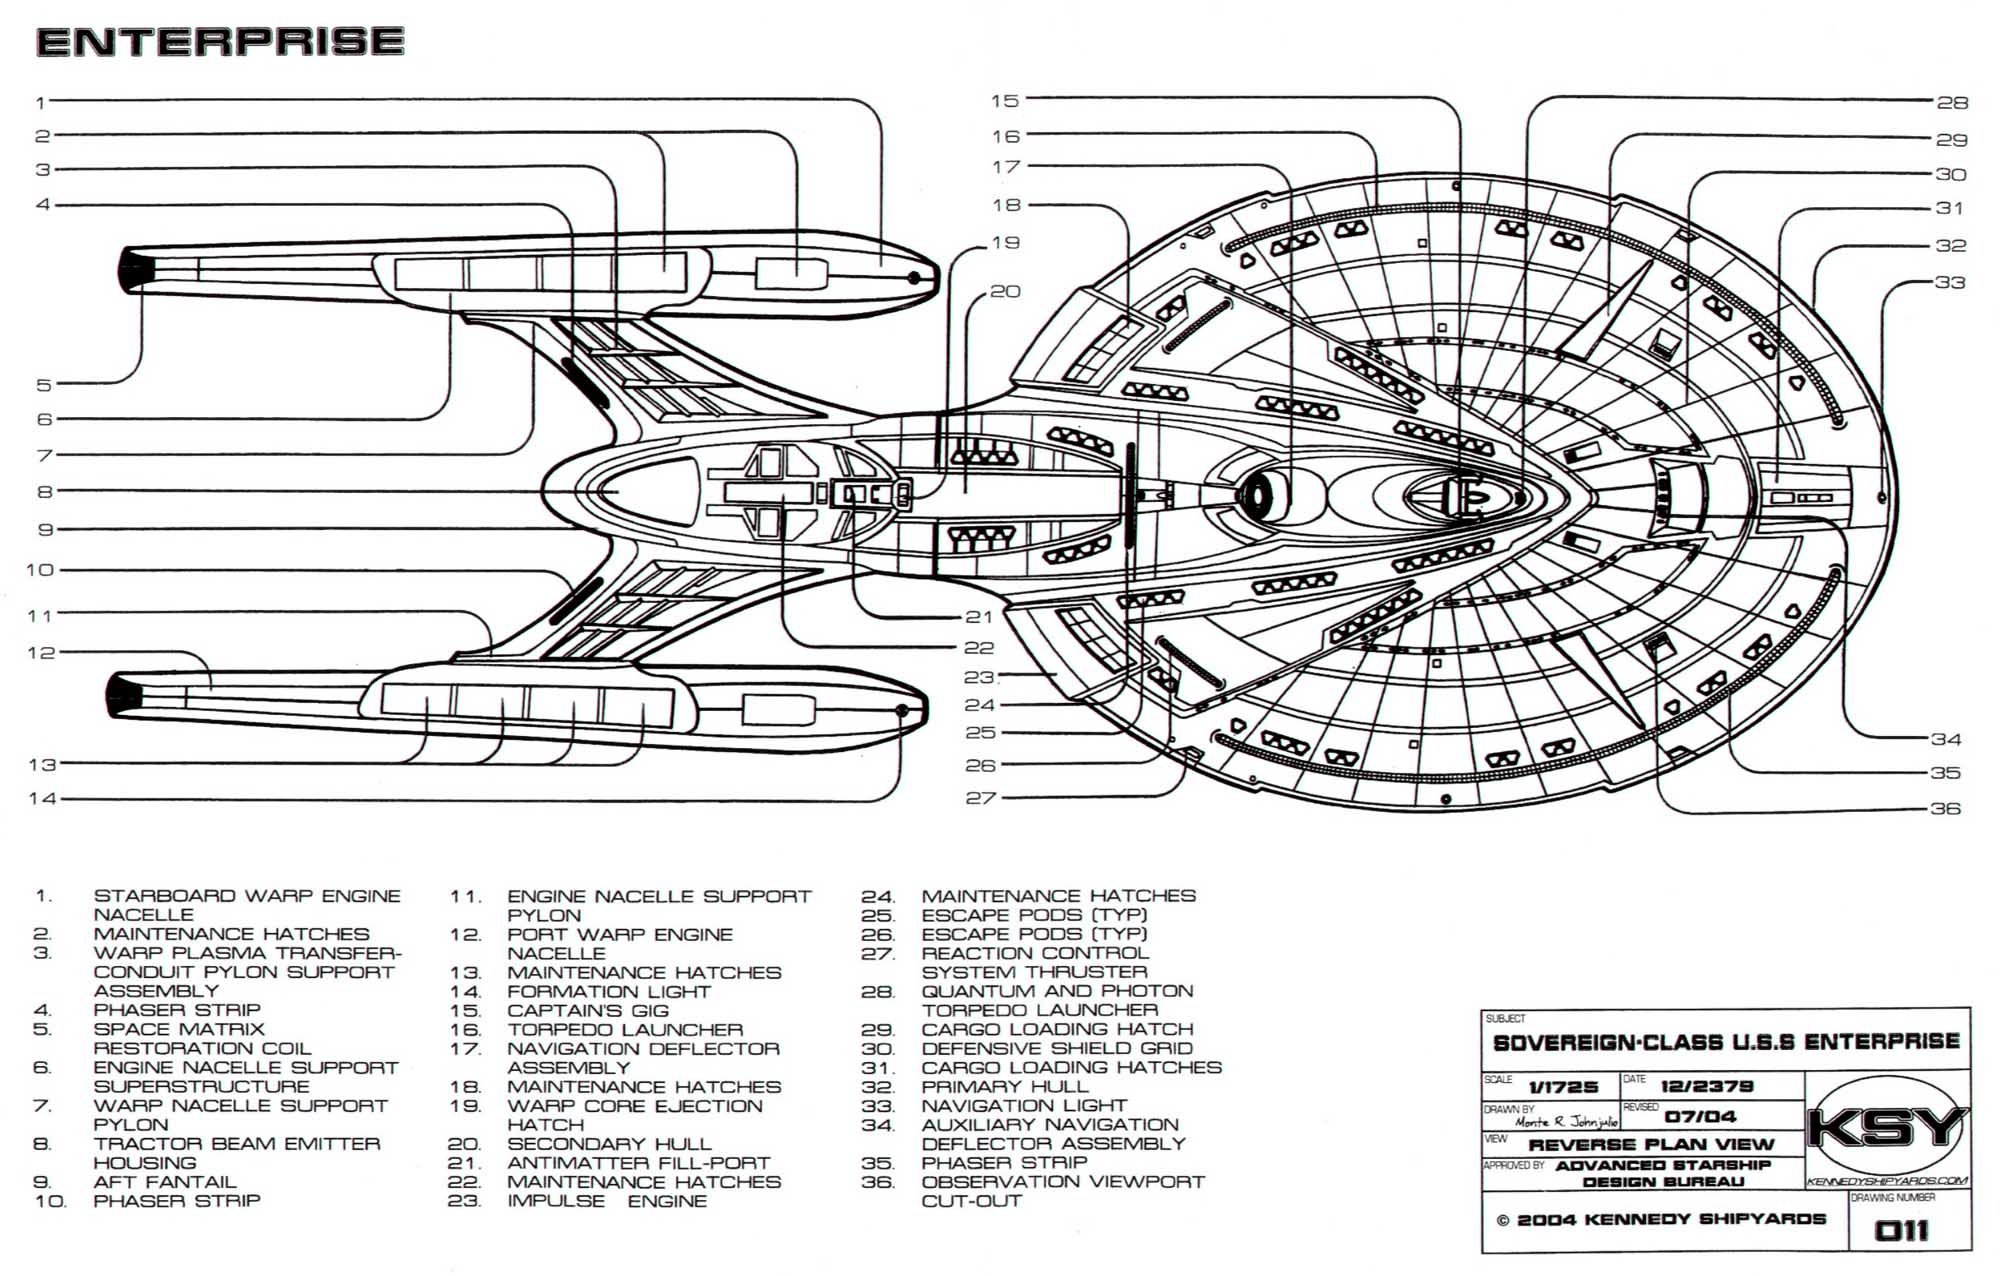 Star Trek Blueprints Sovereign Class Federation Starship